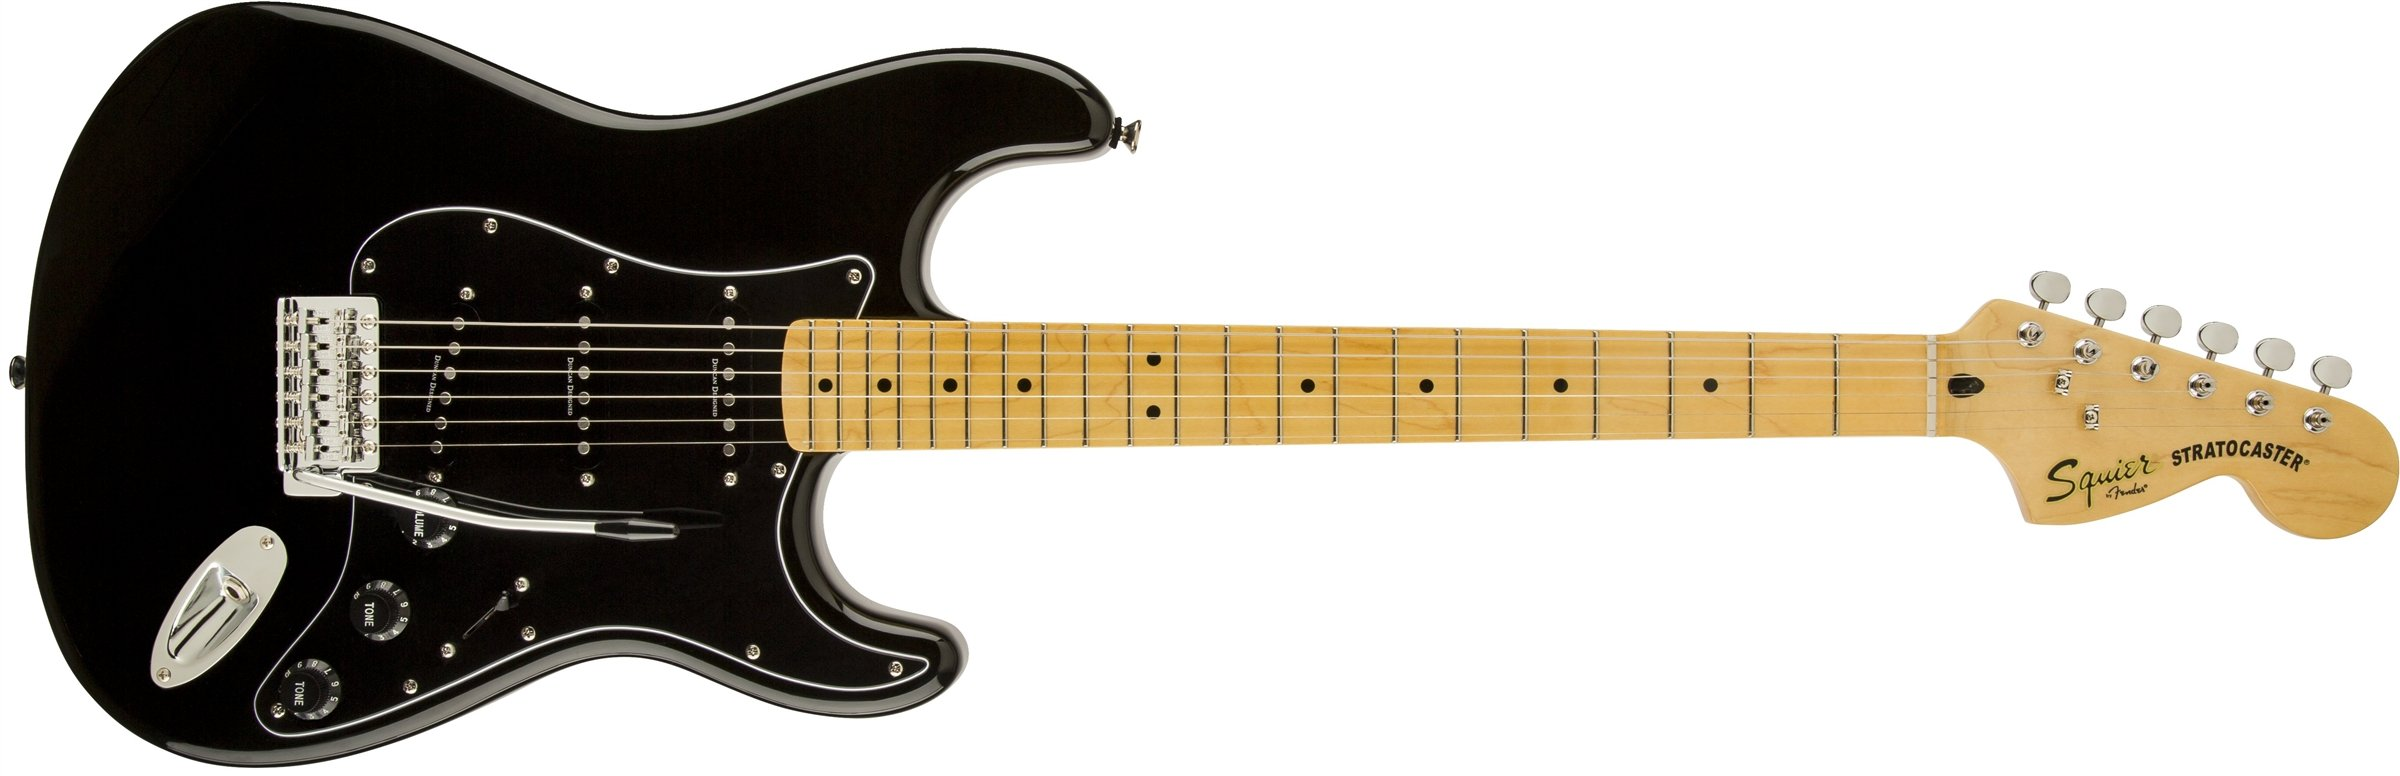 Squier by Fender Vintage Modified 70's Stratocaster Electric Guitar - Black - Maple Fingerboard